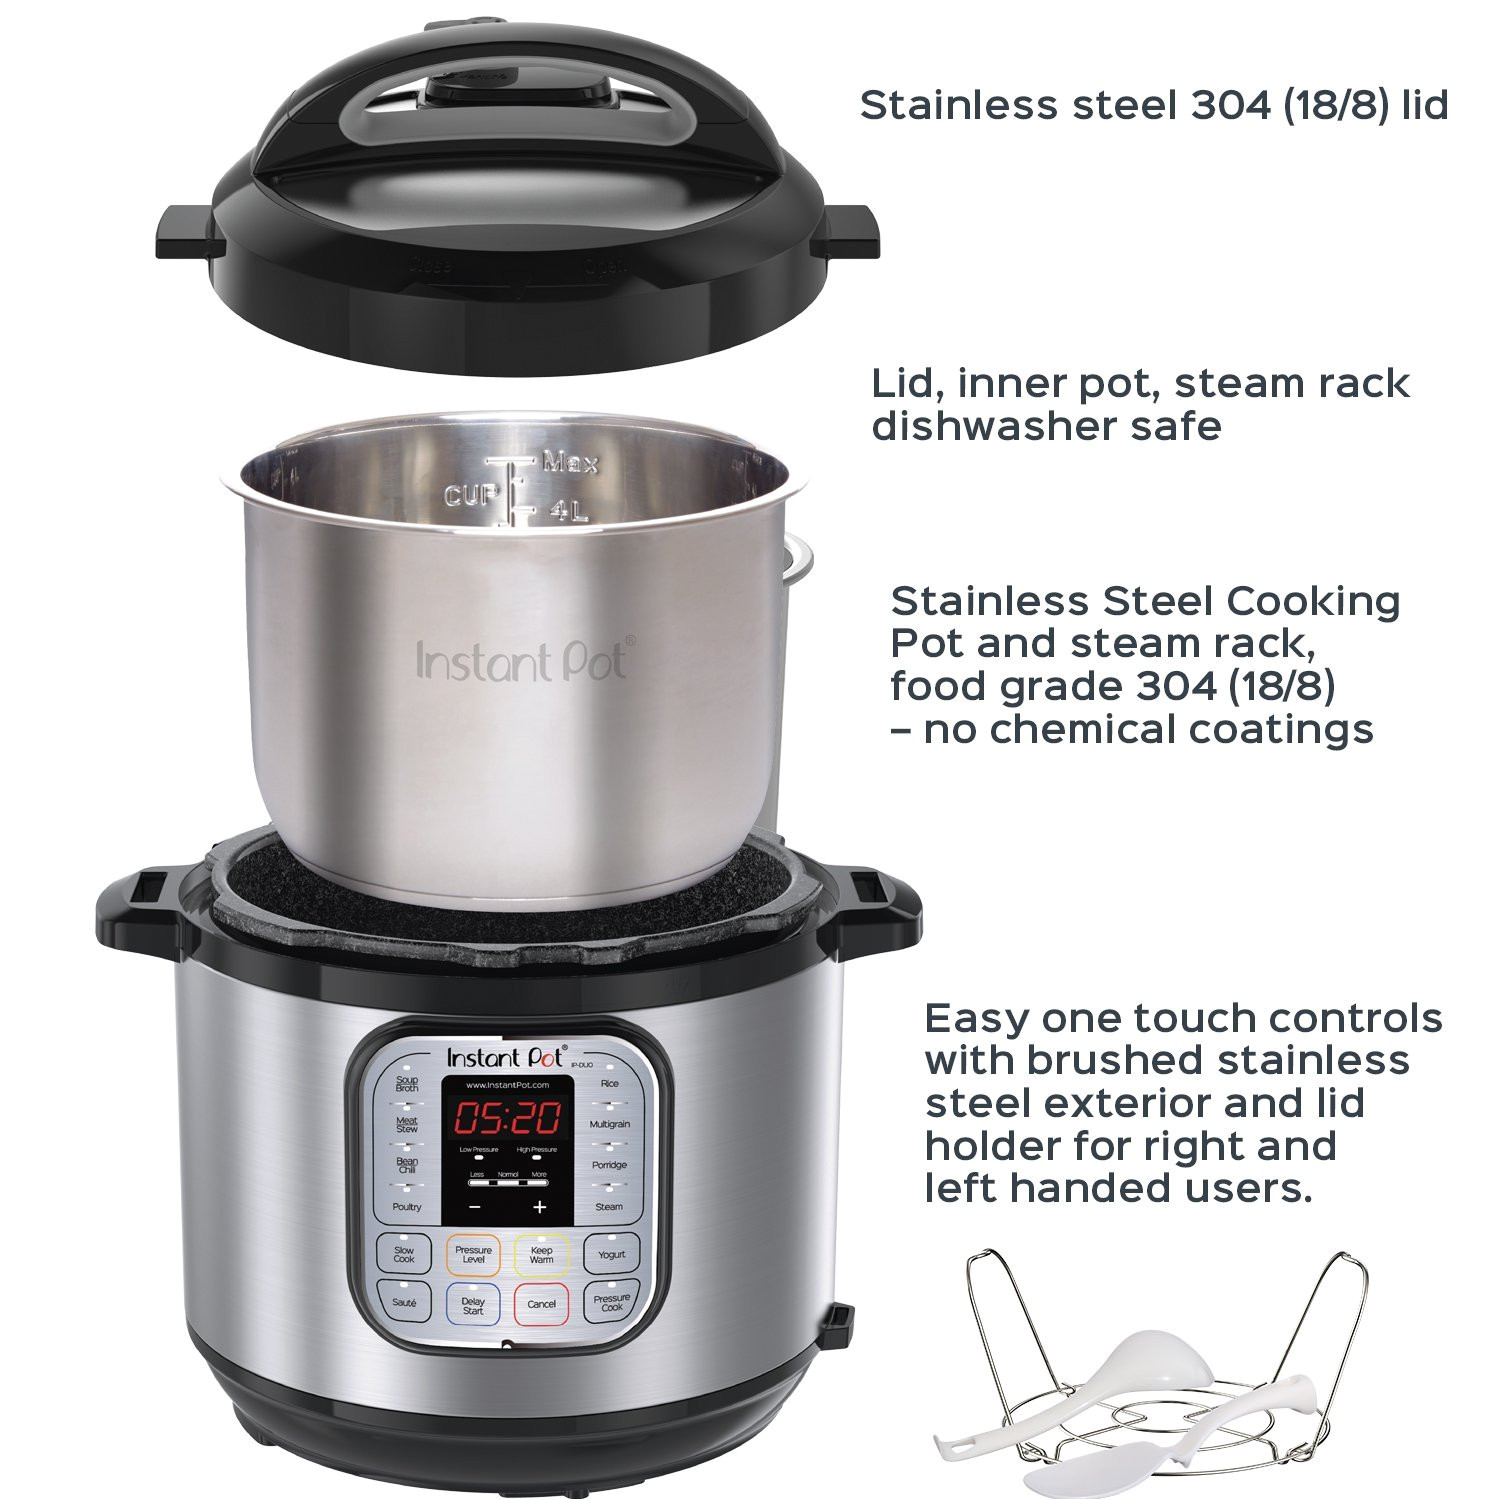 instant pot duo60 6 qt 7 in 1 multi use programmable pressure cooker slow cooker rice cooker steamer saute yogurt maker and warmer walmart com